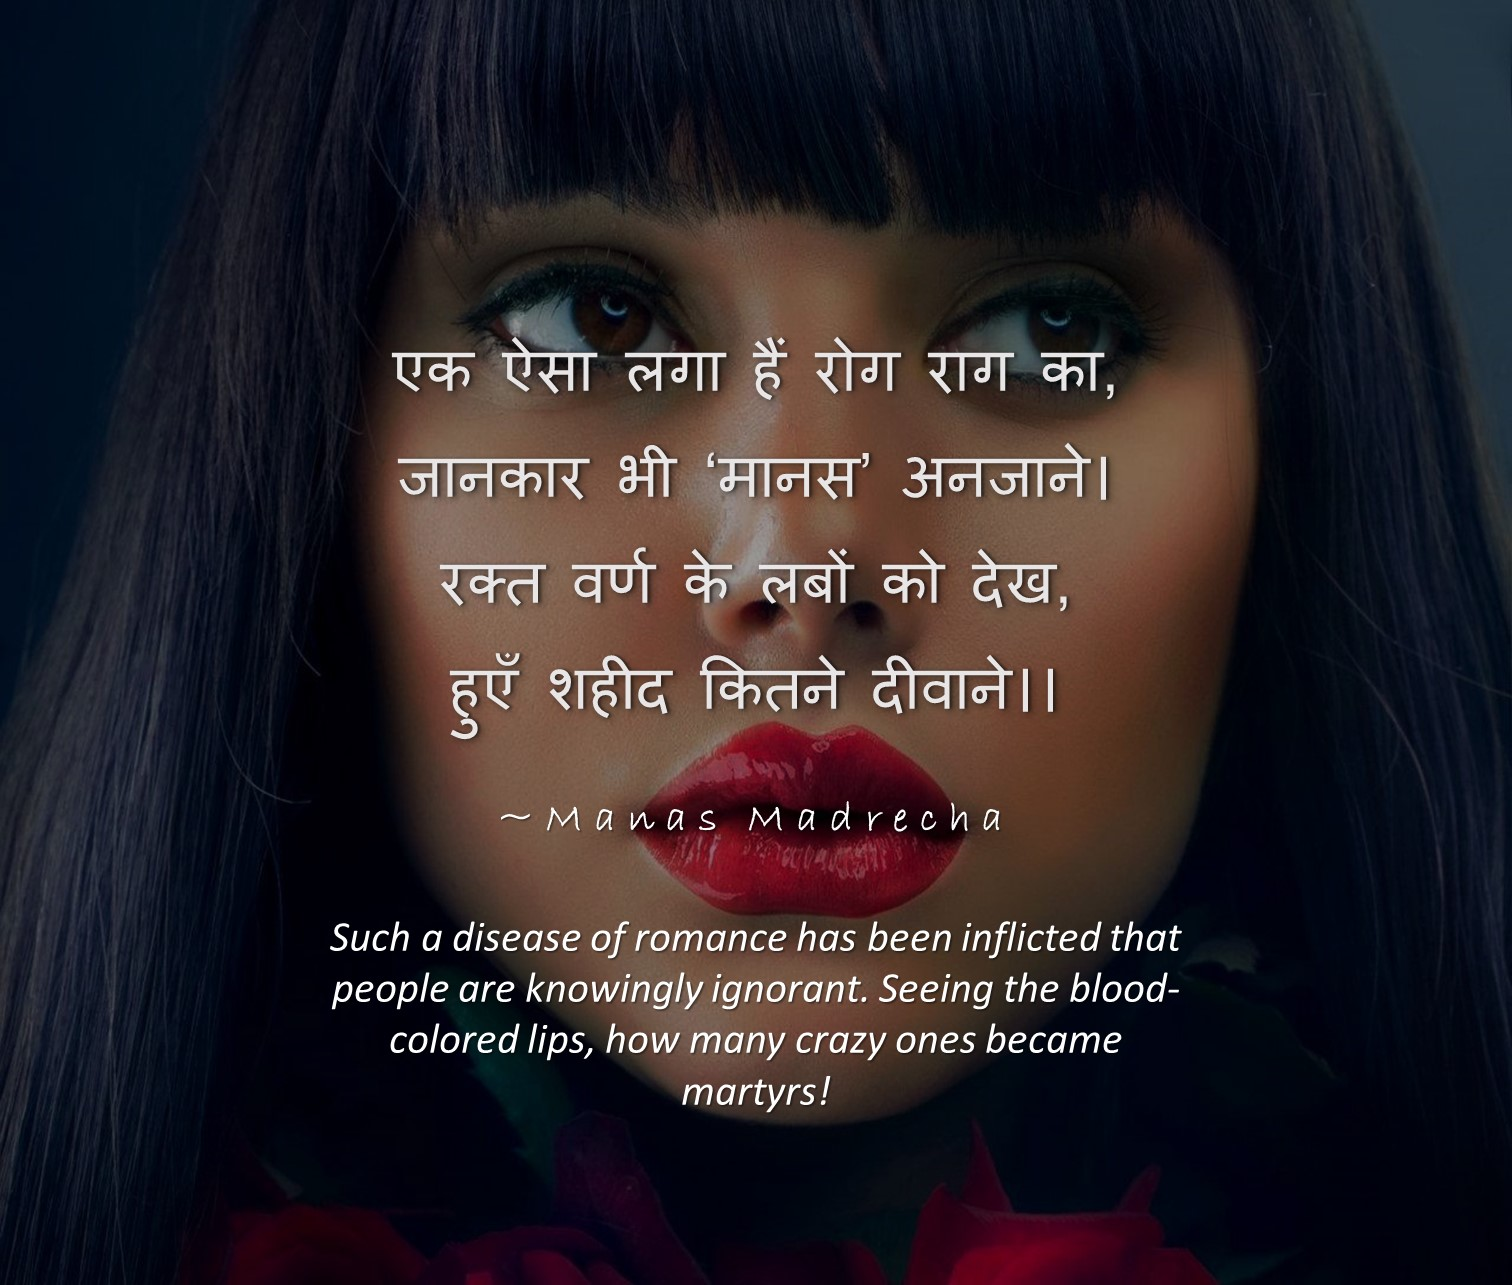 poem on love, Manas Madrecha, Manas Madrecha poems, poems by Manas Madrecha, Manas Madrecha quotes, love quotes, quotes on love, Manas Madrecha blog, simplifying universe, teenage quotes, teenage poem, youth poem, youth quotes, quotes on youth, romantic poem, beautiful girl, hot girl, girl looking, cute girl, pretty girl, red lips, girl lips, girl looking away, girl hair, girl close up